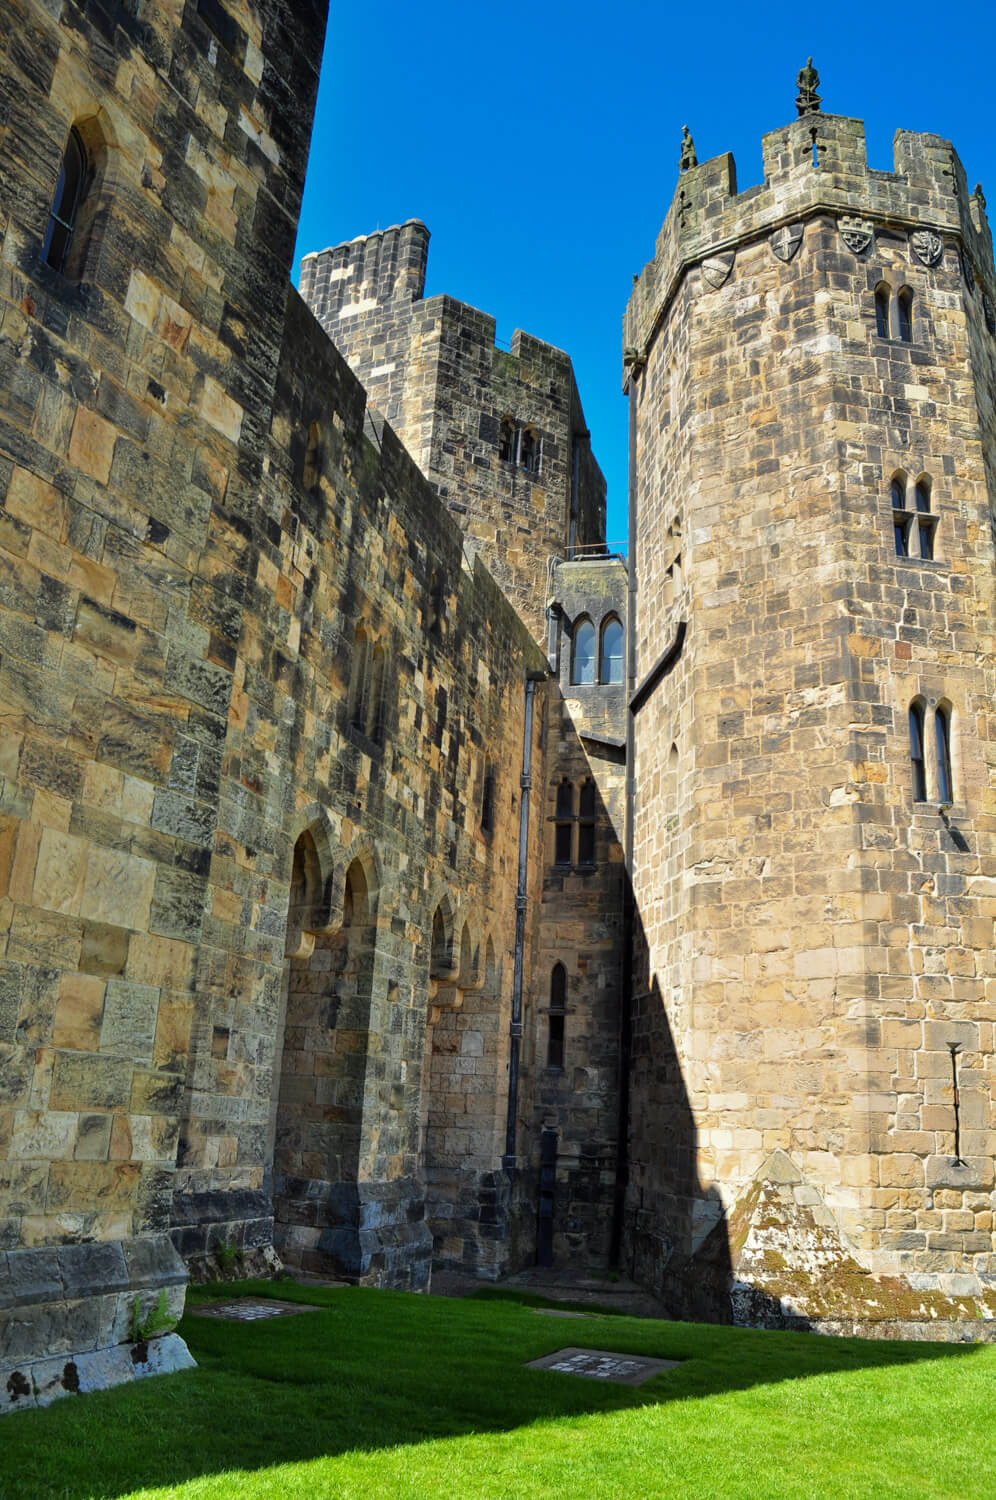 Harry Potter movie locations - Alnwick Castle - JRMI